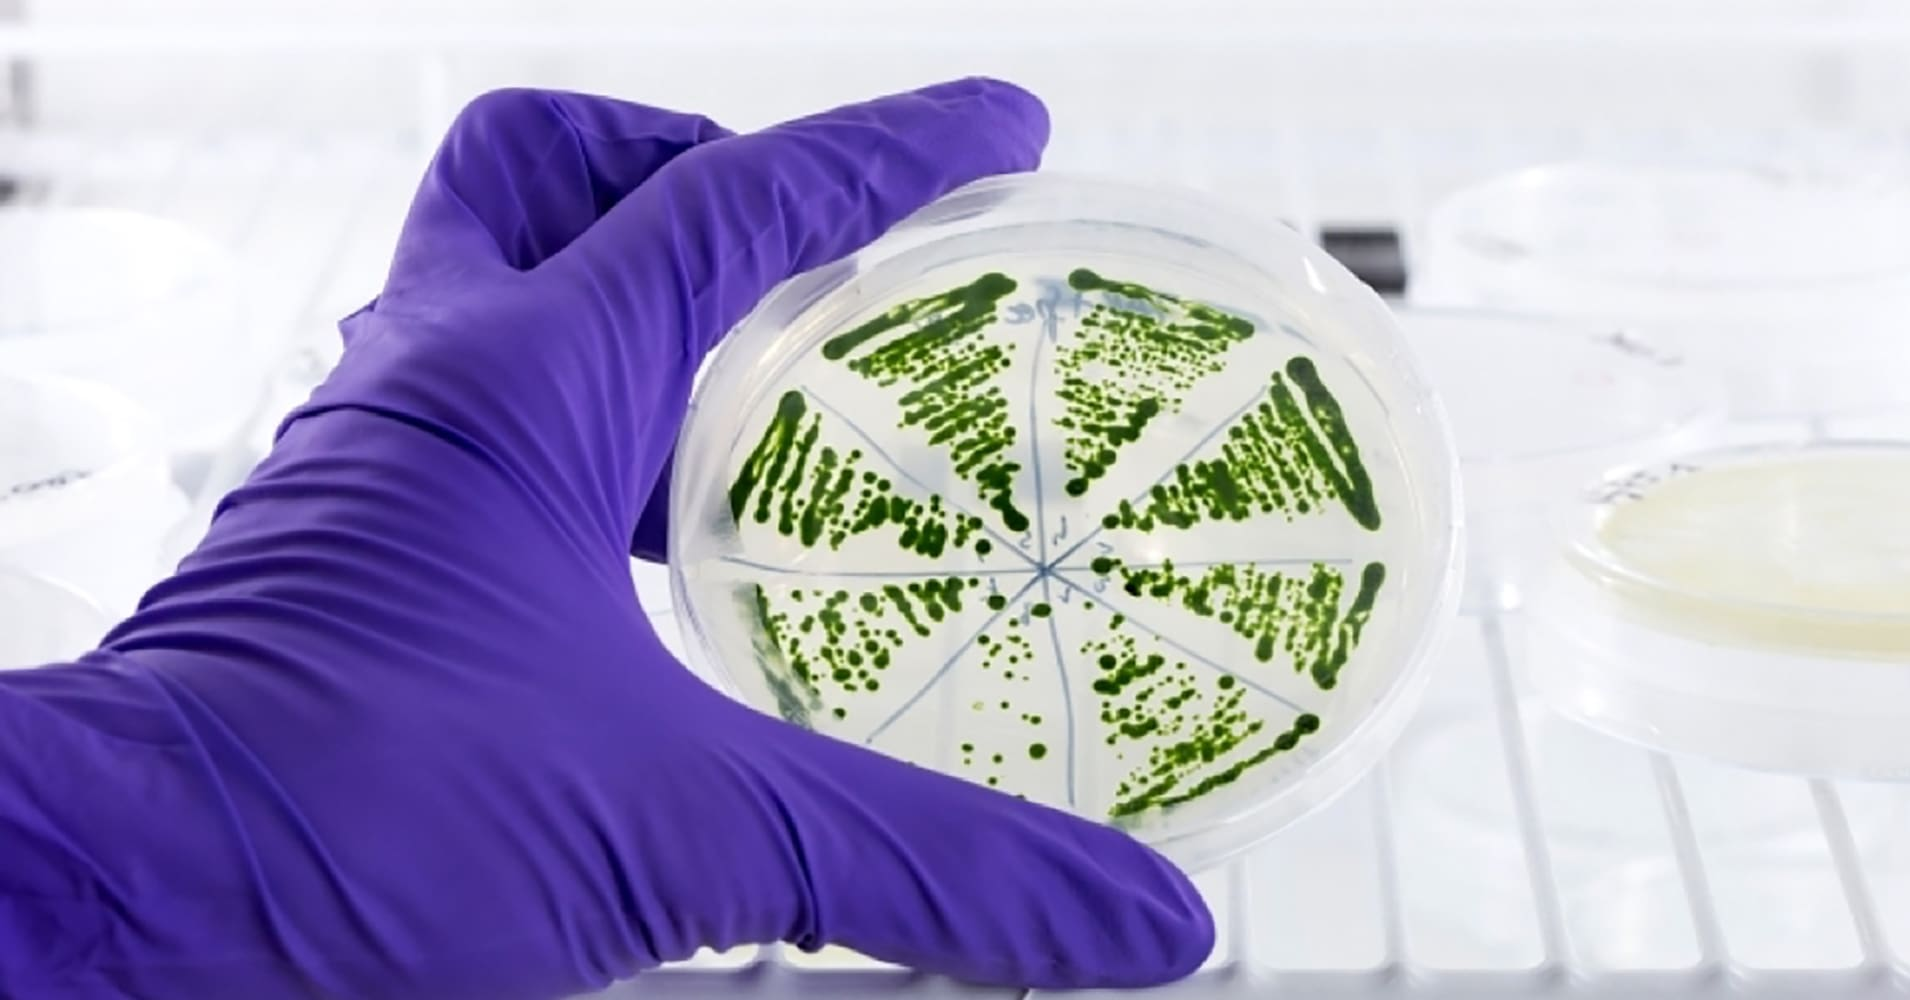 Microalgae, a promising pathway to sustainable biofuels